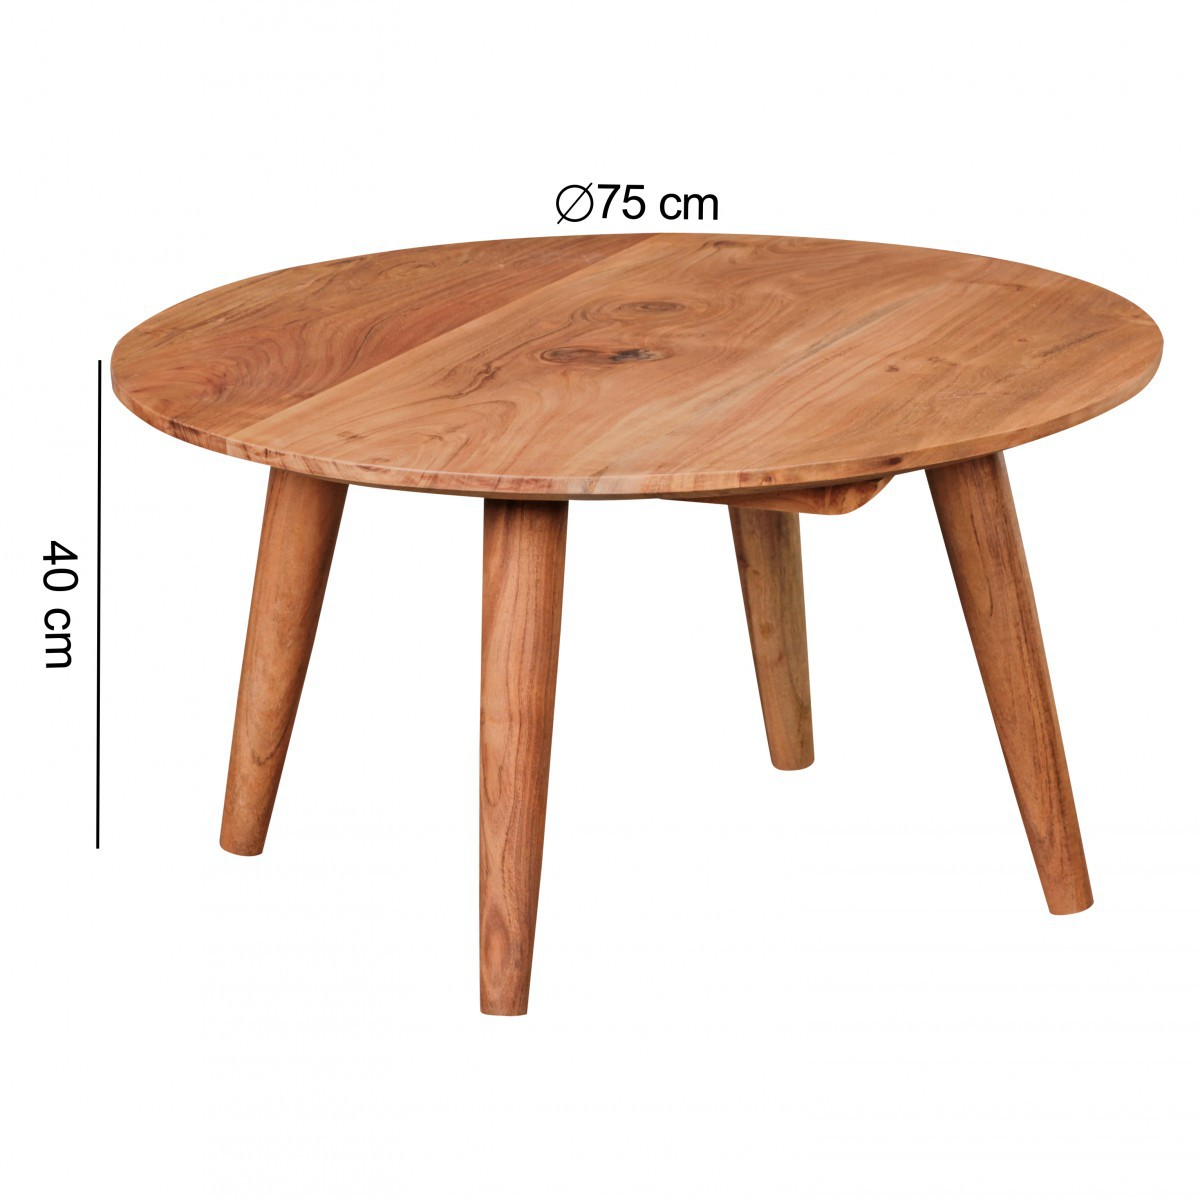 finebuy table basse en bois massif acacia table basse ronde 75 x 40 cm ferme ebay. Black Bedroom Furniture Sets. Home Design Ideas